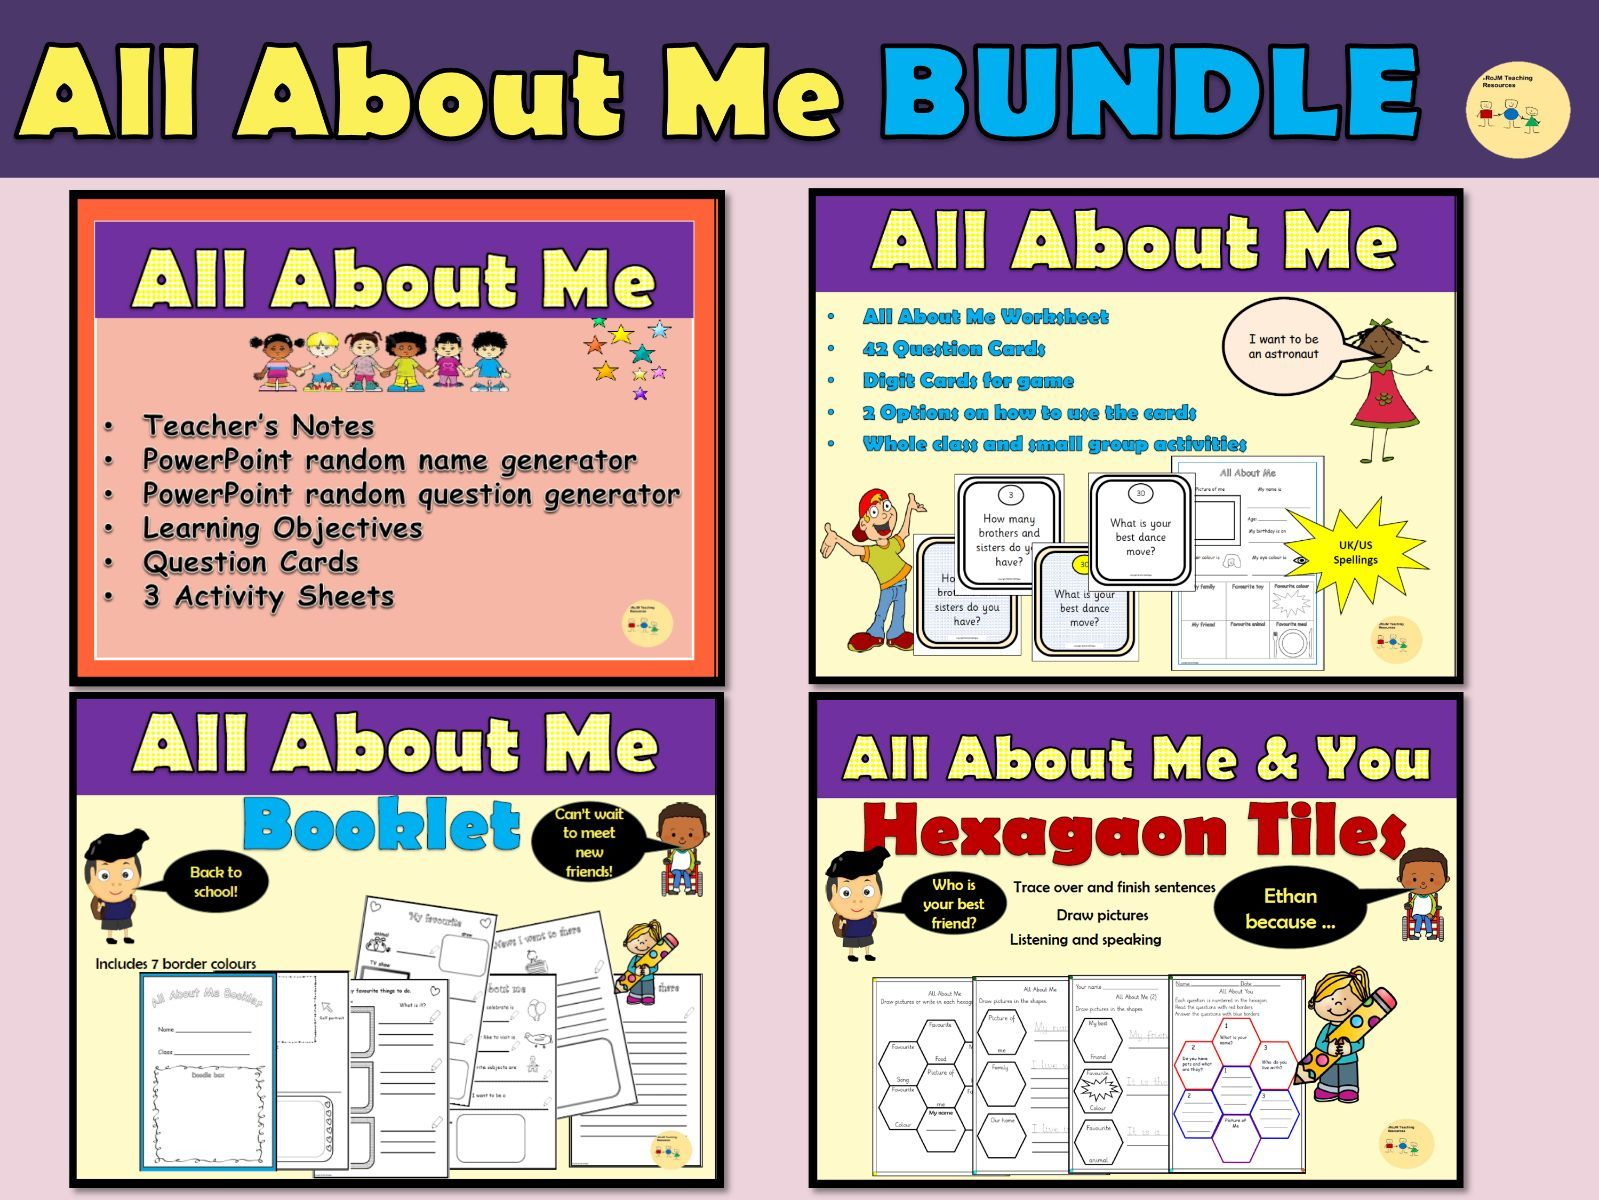 All About Me/Back to School: Worksheets, Question Cards, Booklet BUNDLE